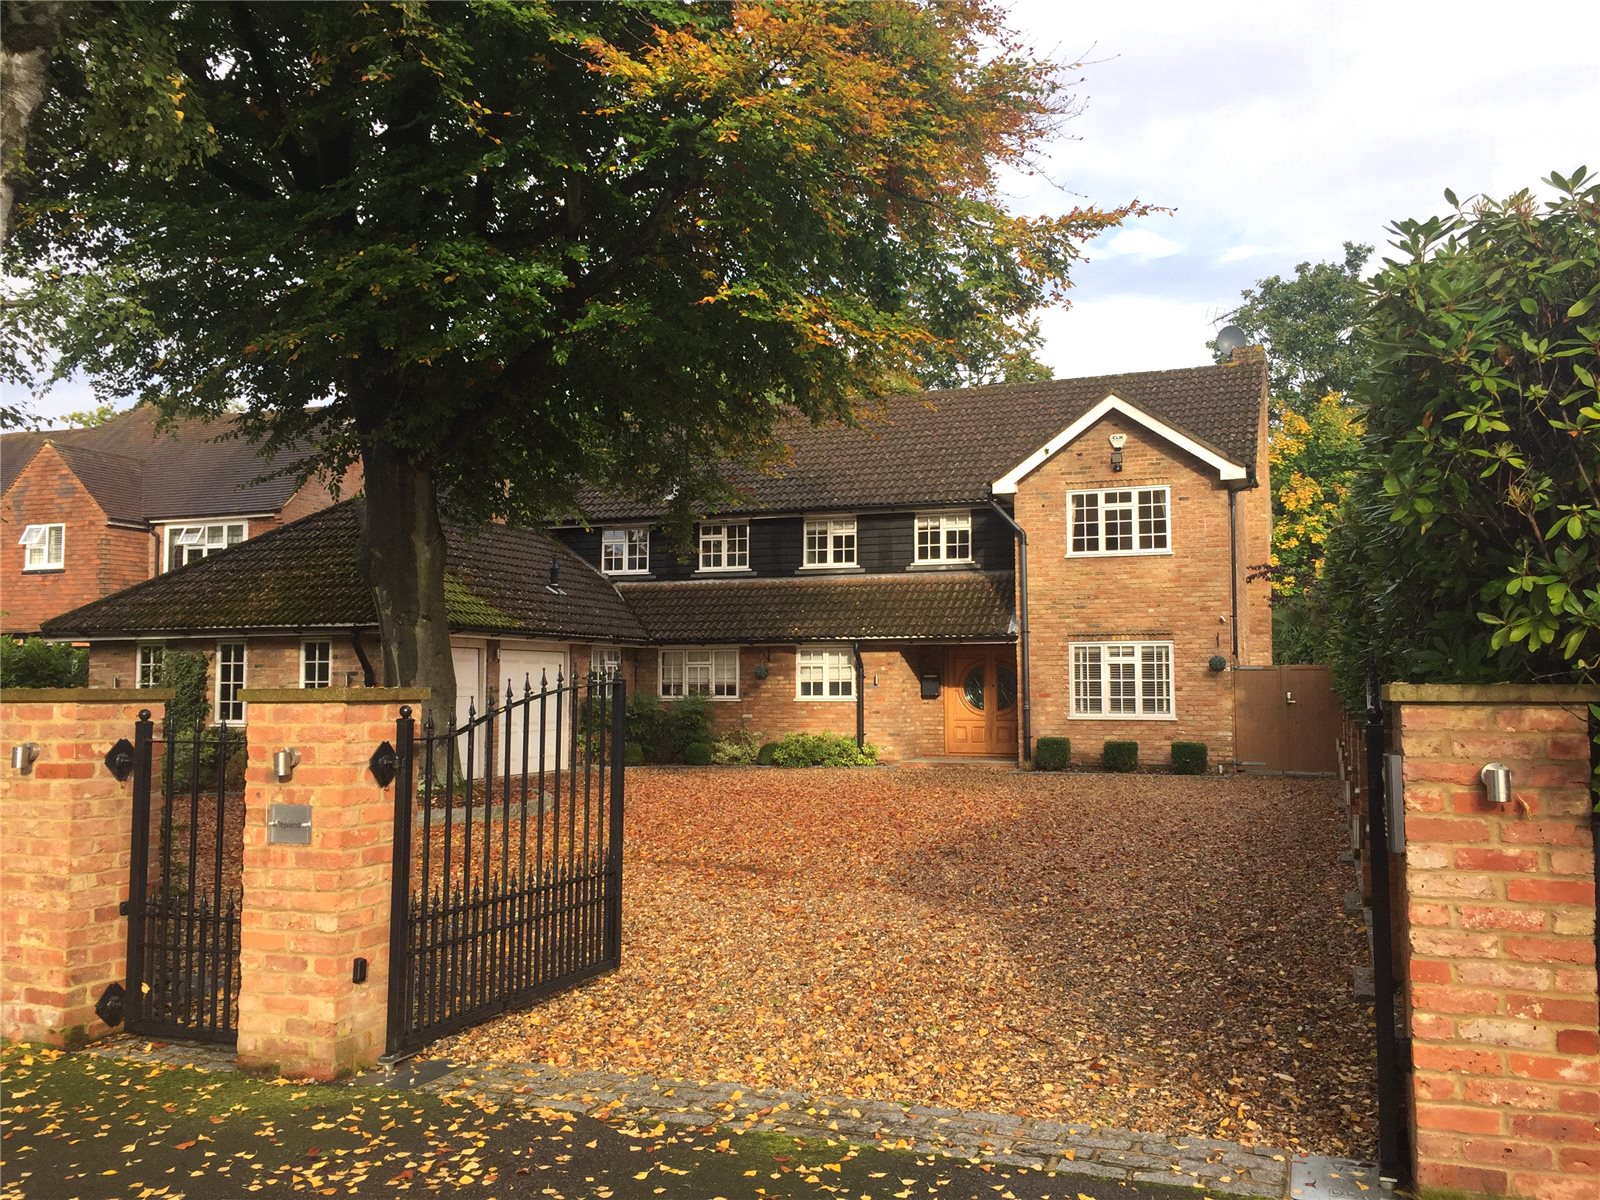 Частный дом для того Продажа на Dukes Wood Drive, Gerrards Cross, Buckinghamshire, SL9 Gerrards Cross, Англия